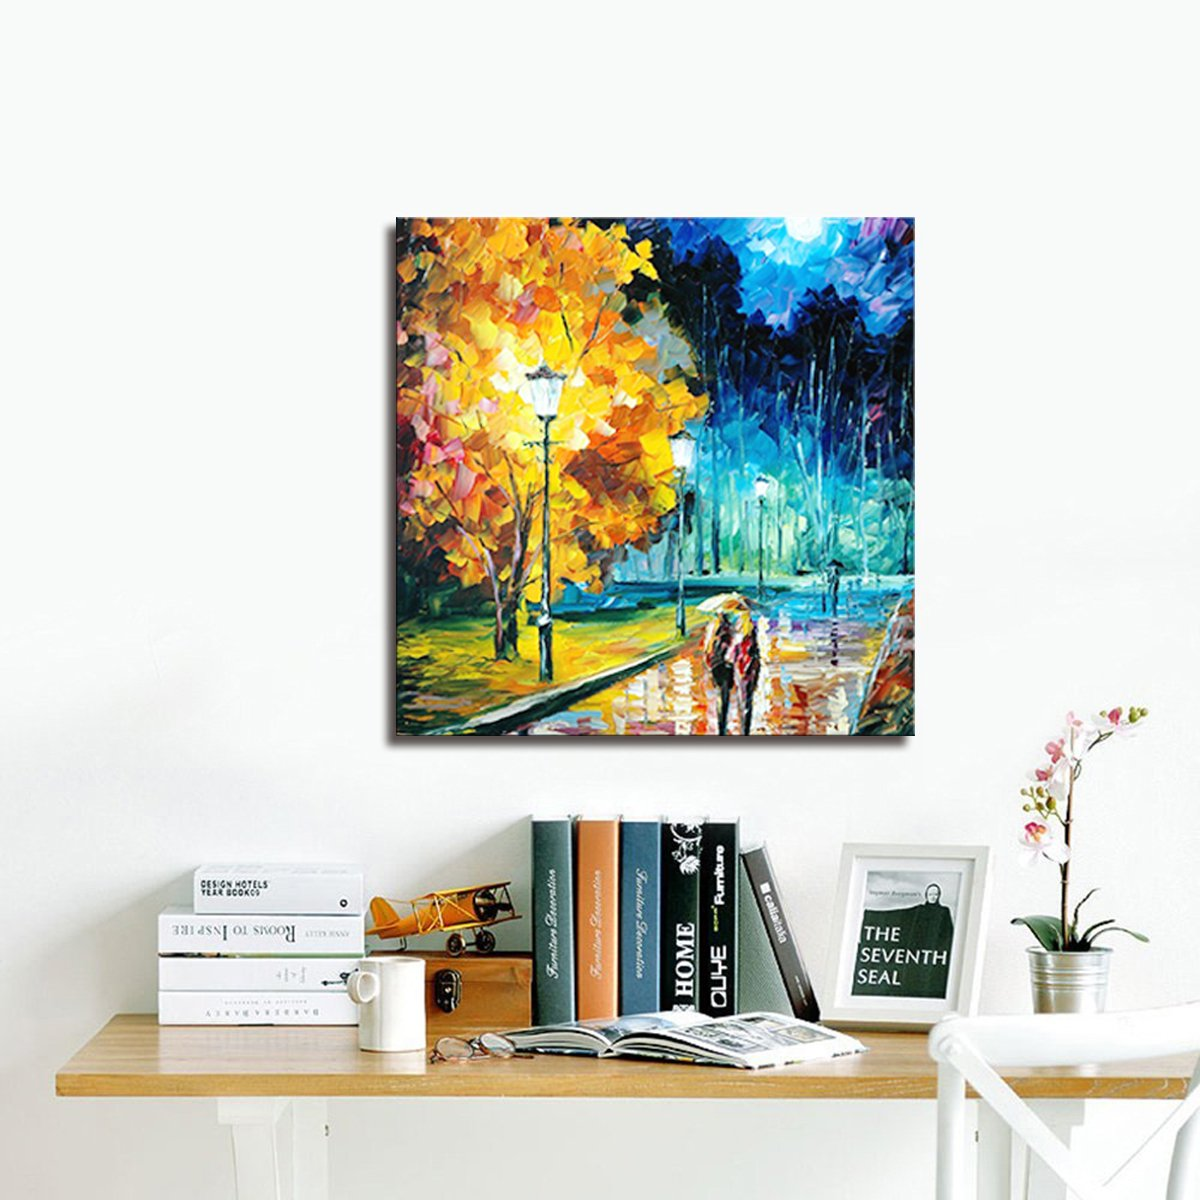 Modern Abstract Oil Paintings Wall Home Decor Artwork Abstract Extra Large-City Hand Painted on Canvas 24X24 Inch (Works Gorgeous 4)